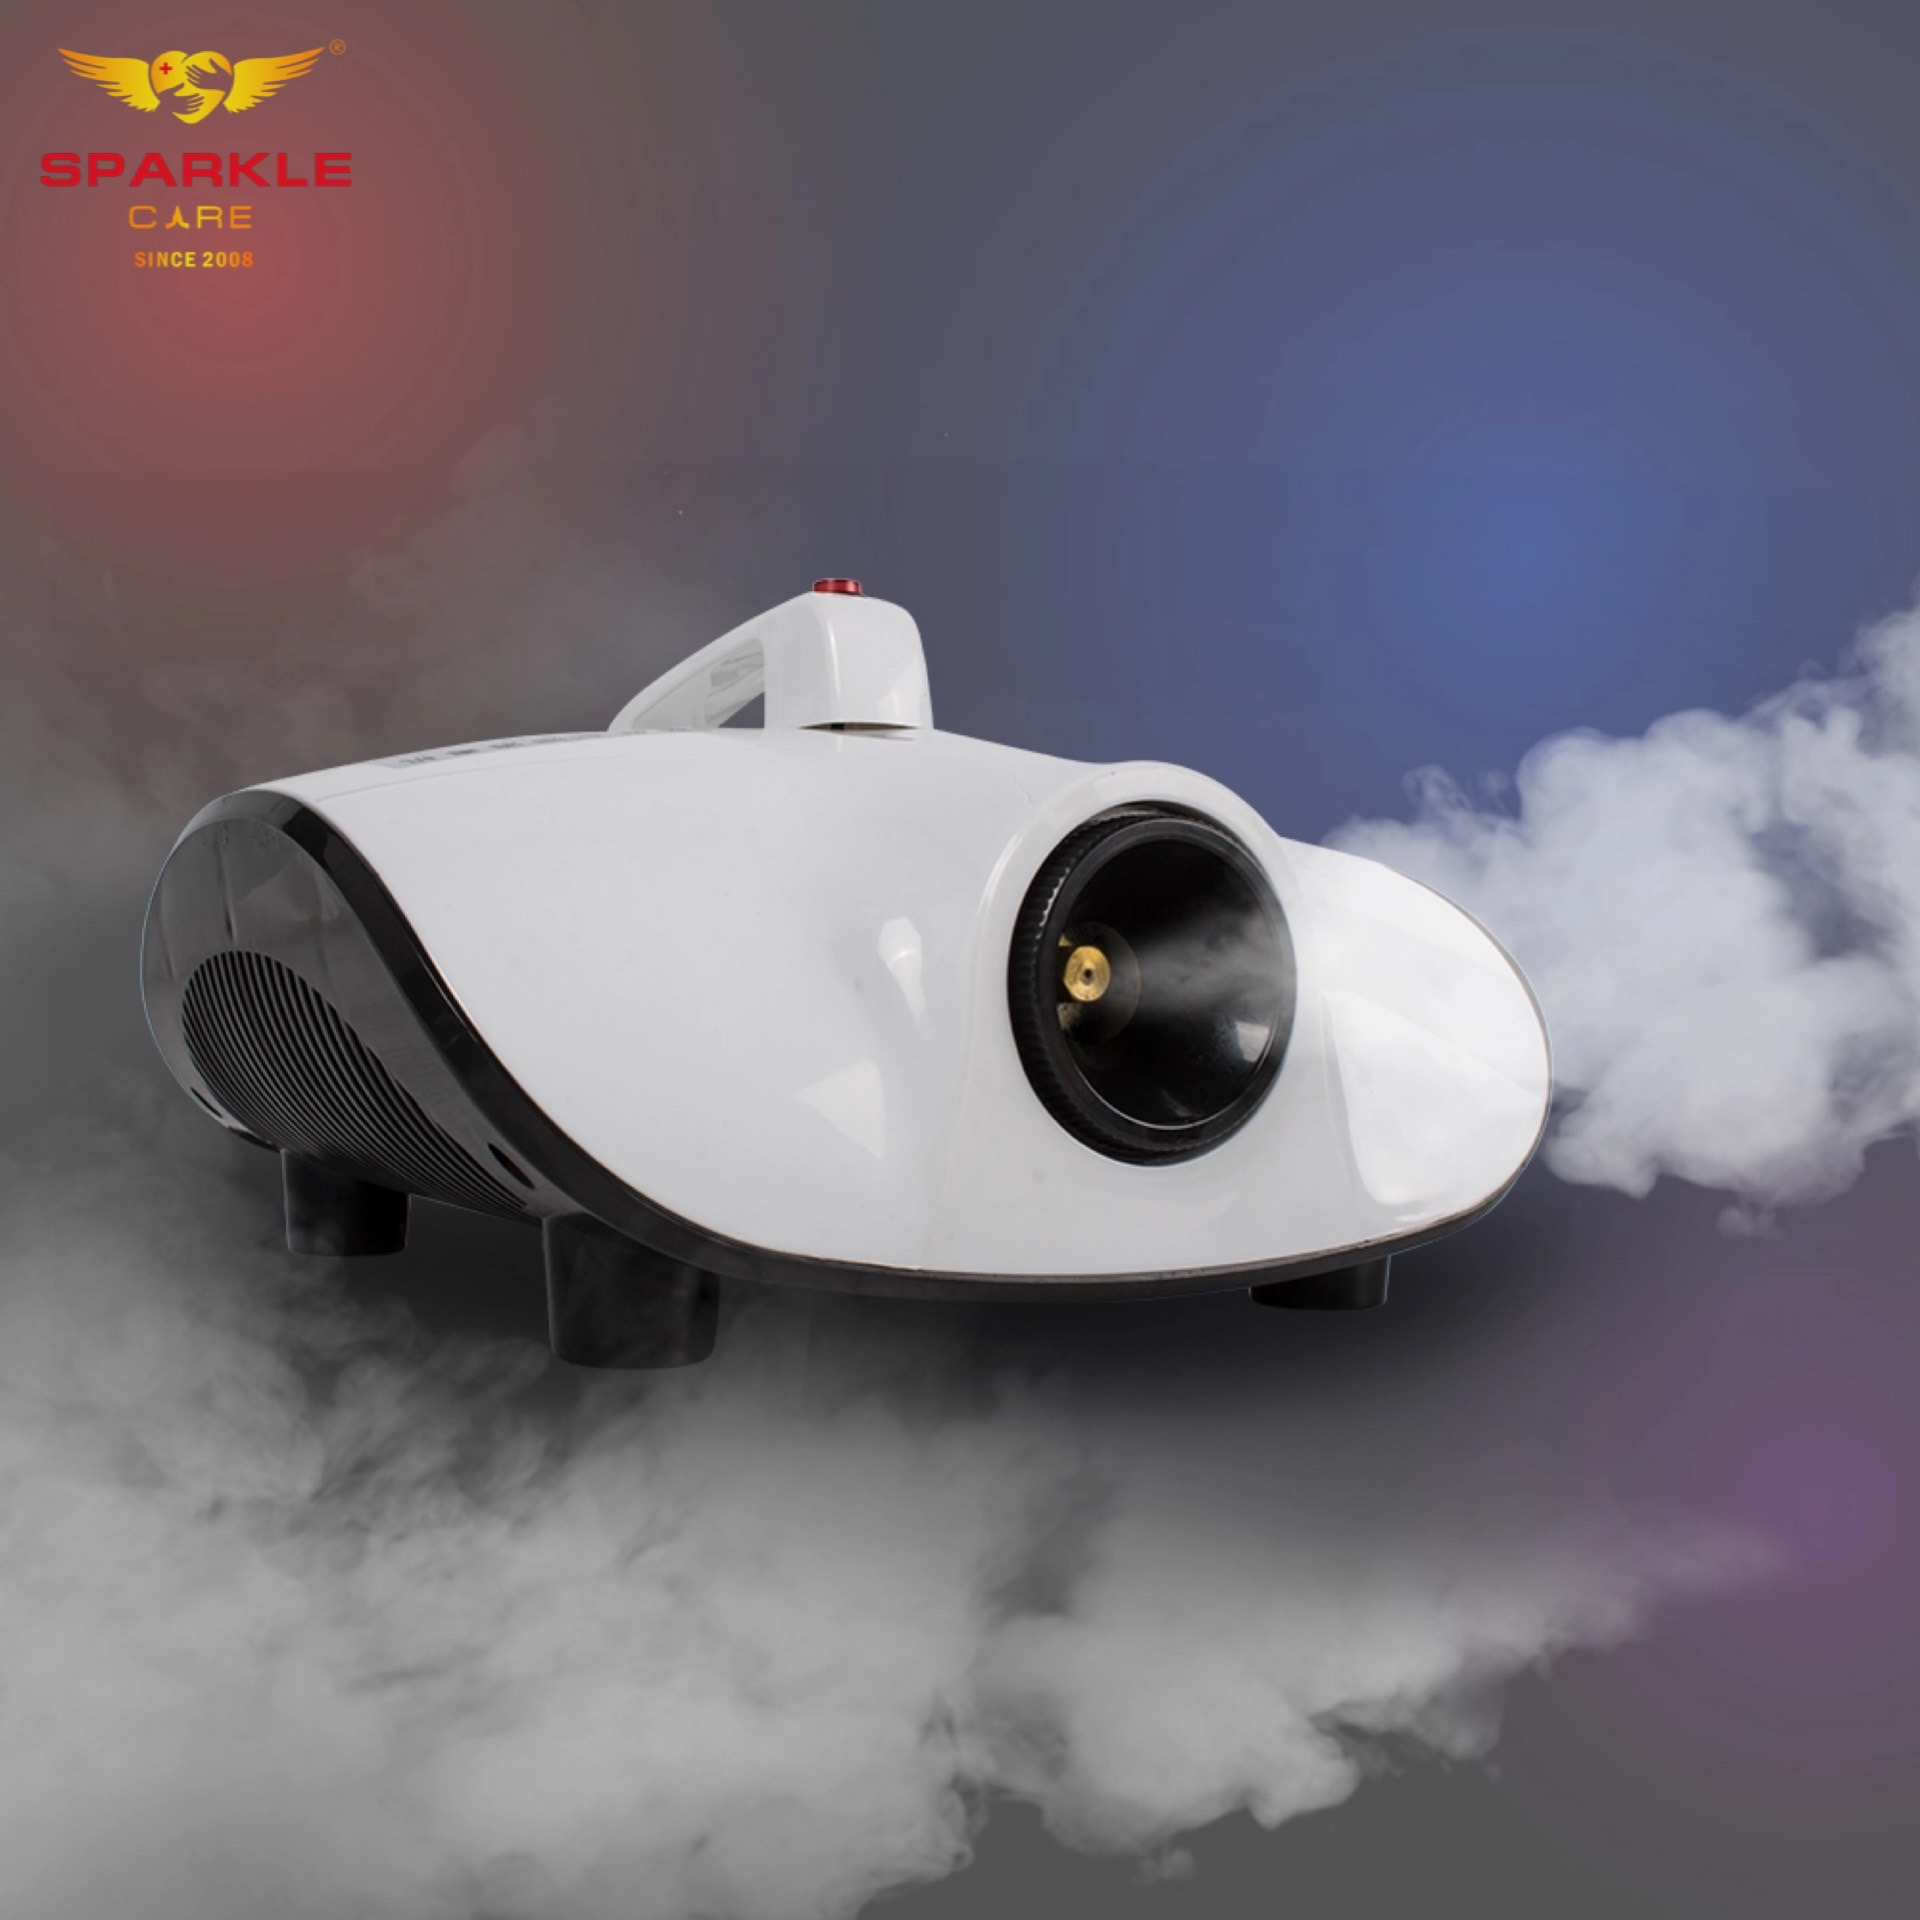 Black Friday 900W Disinfection Fog Smoke Machine 2021 Best Christmas Gift Car Air Purification <strong>Spray</strong> for Home Vehicle Gym School